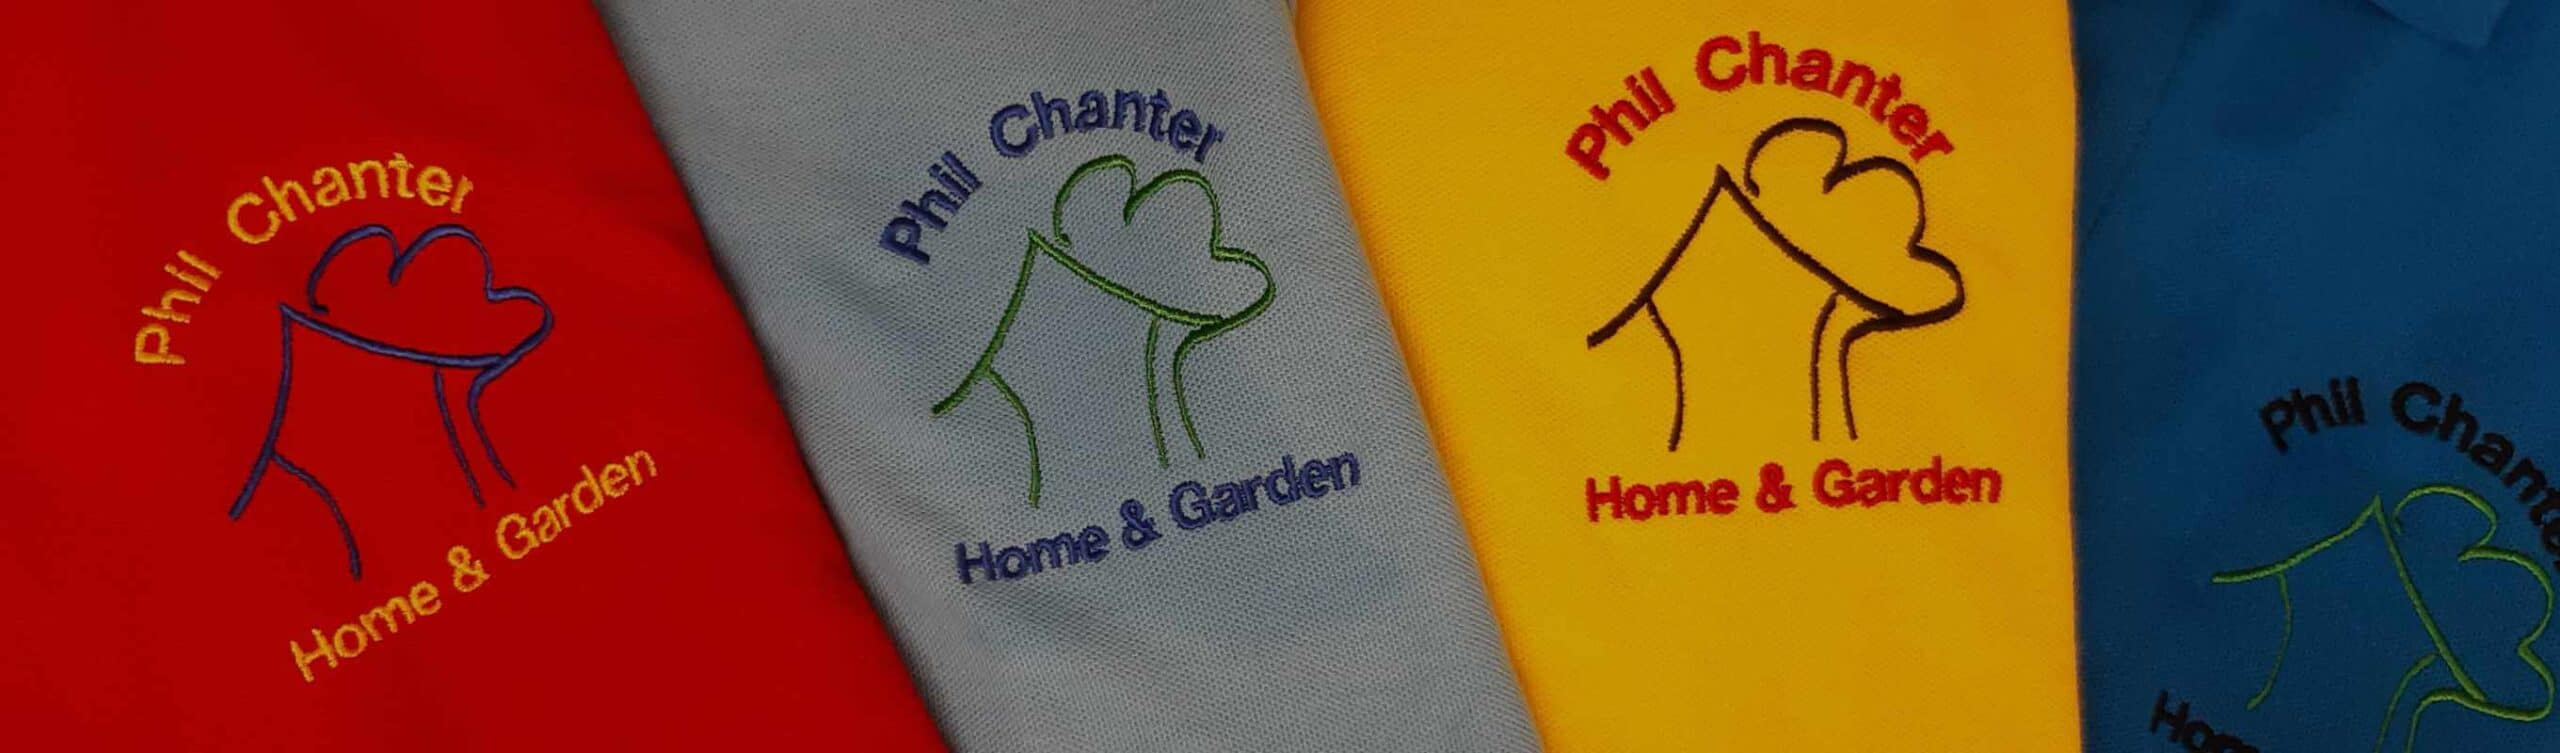 Phil Chanter Polo Shirts coloured embroidered